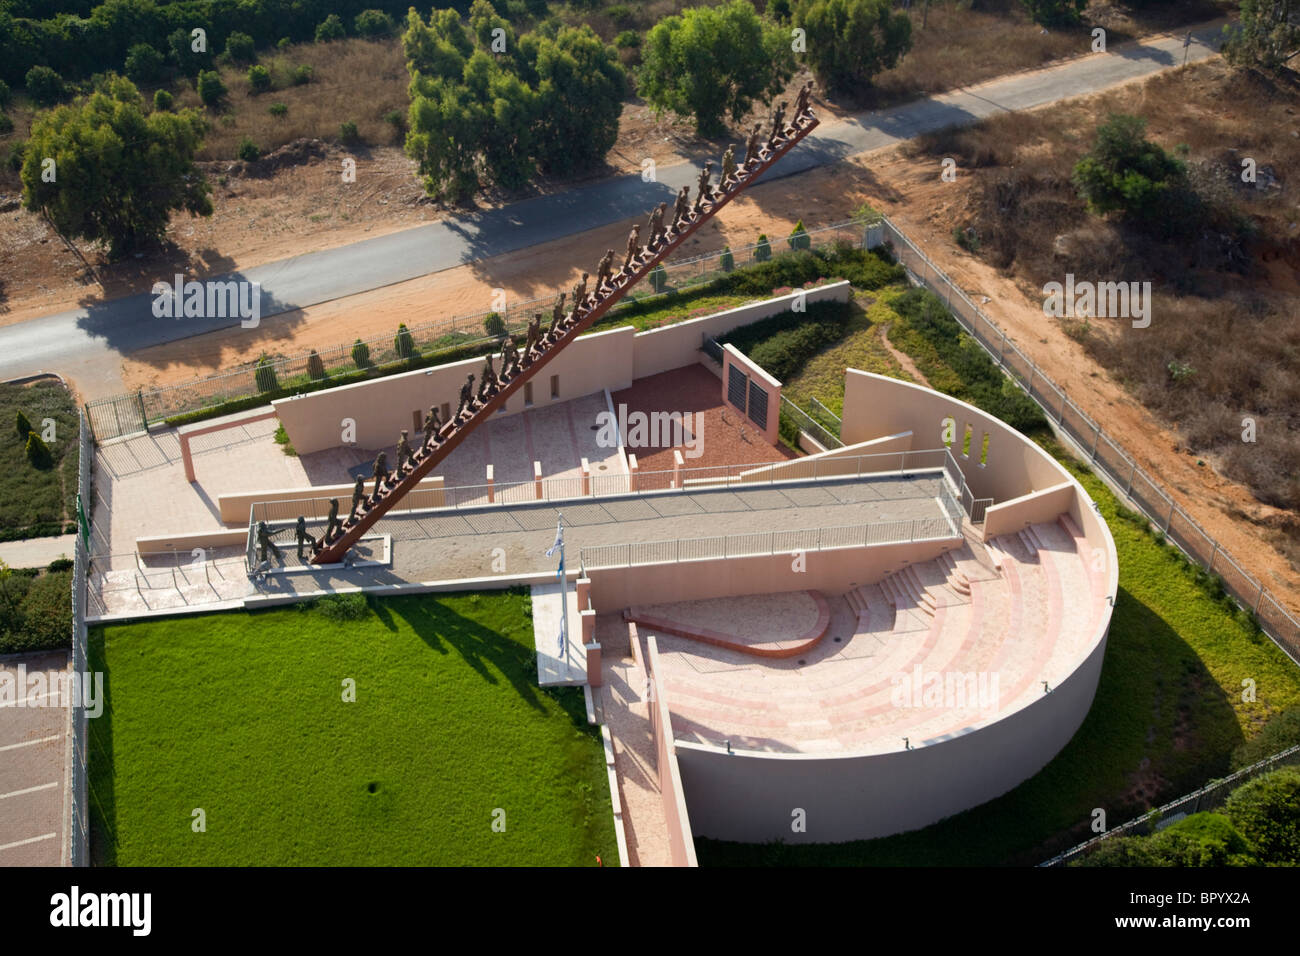 Aerial photograph of the Beit Lid Memorial in the Sharon - Stock Image